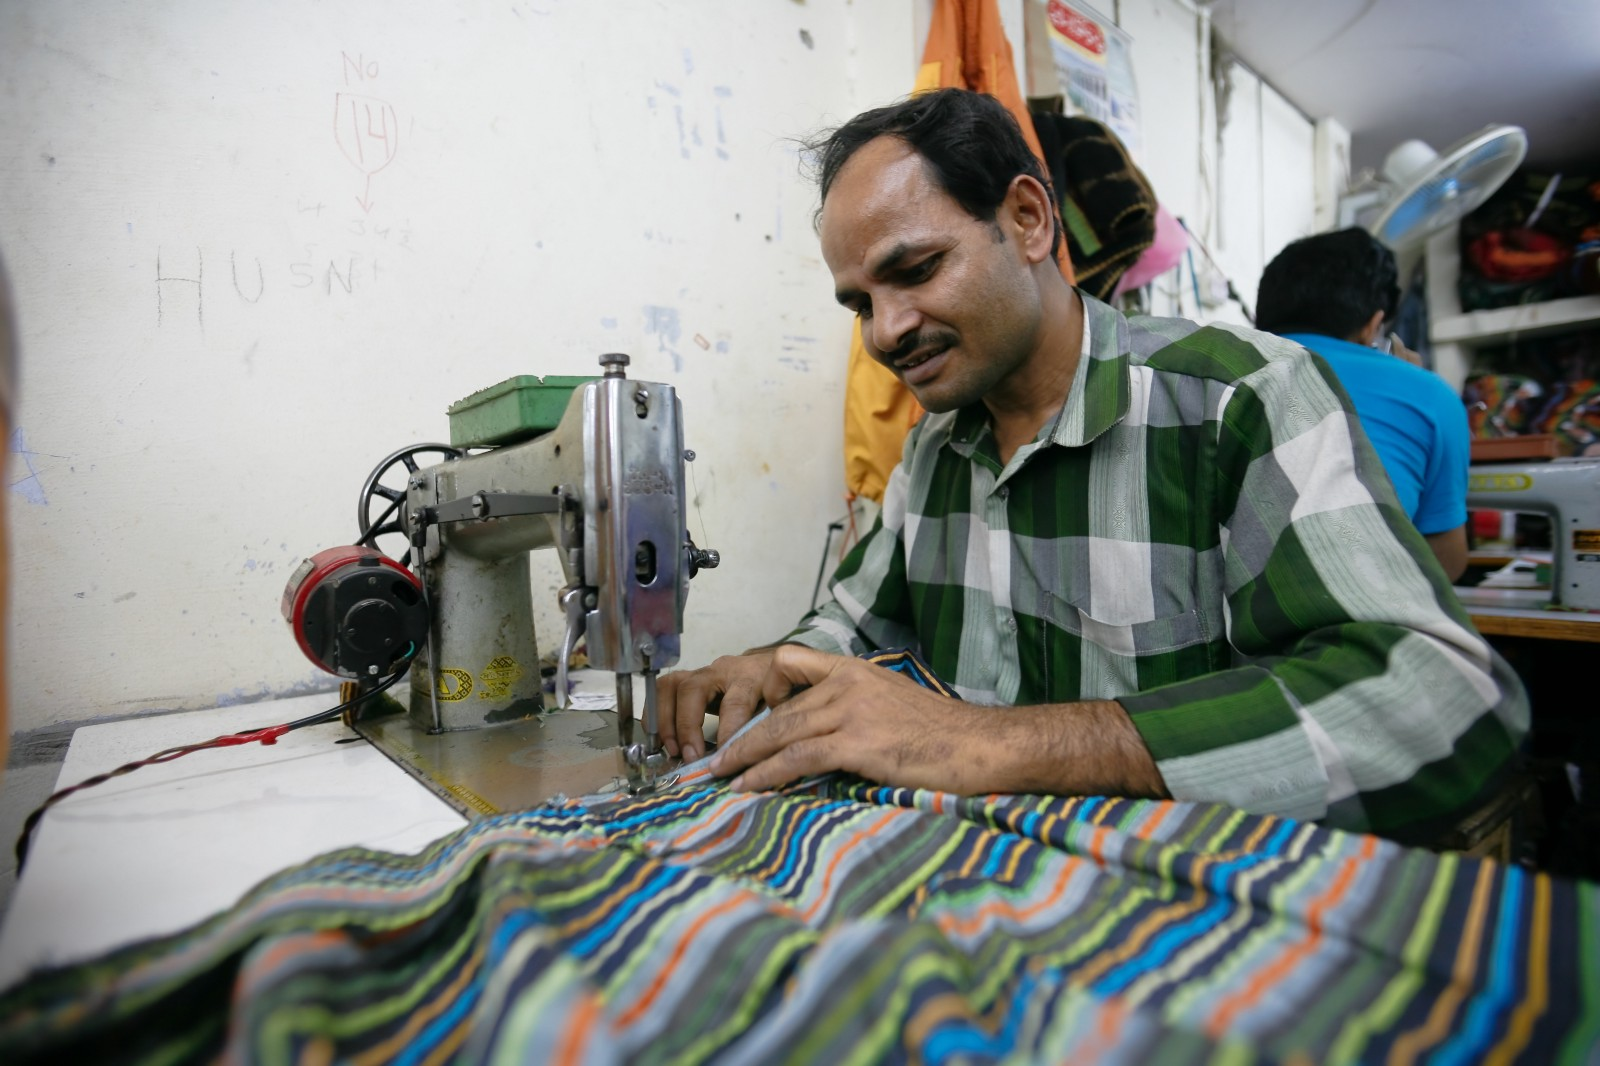 fall textile industry india India's targeted textile exports for financial year 2017-18 is us$ 45 billion however, this target is likely to be missed by a huge margin as per the ministry of textiles, the indian textile industry contributed about 14% to industrial production, 4% to the country's gdp and 13% to the country's export earnings in 2017.